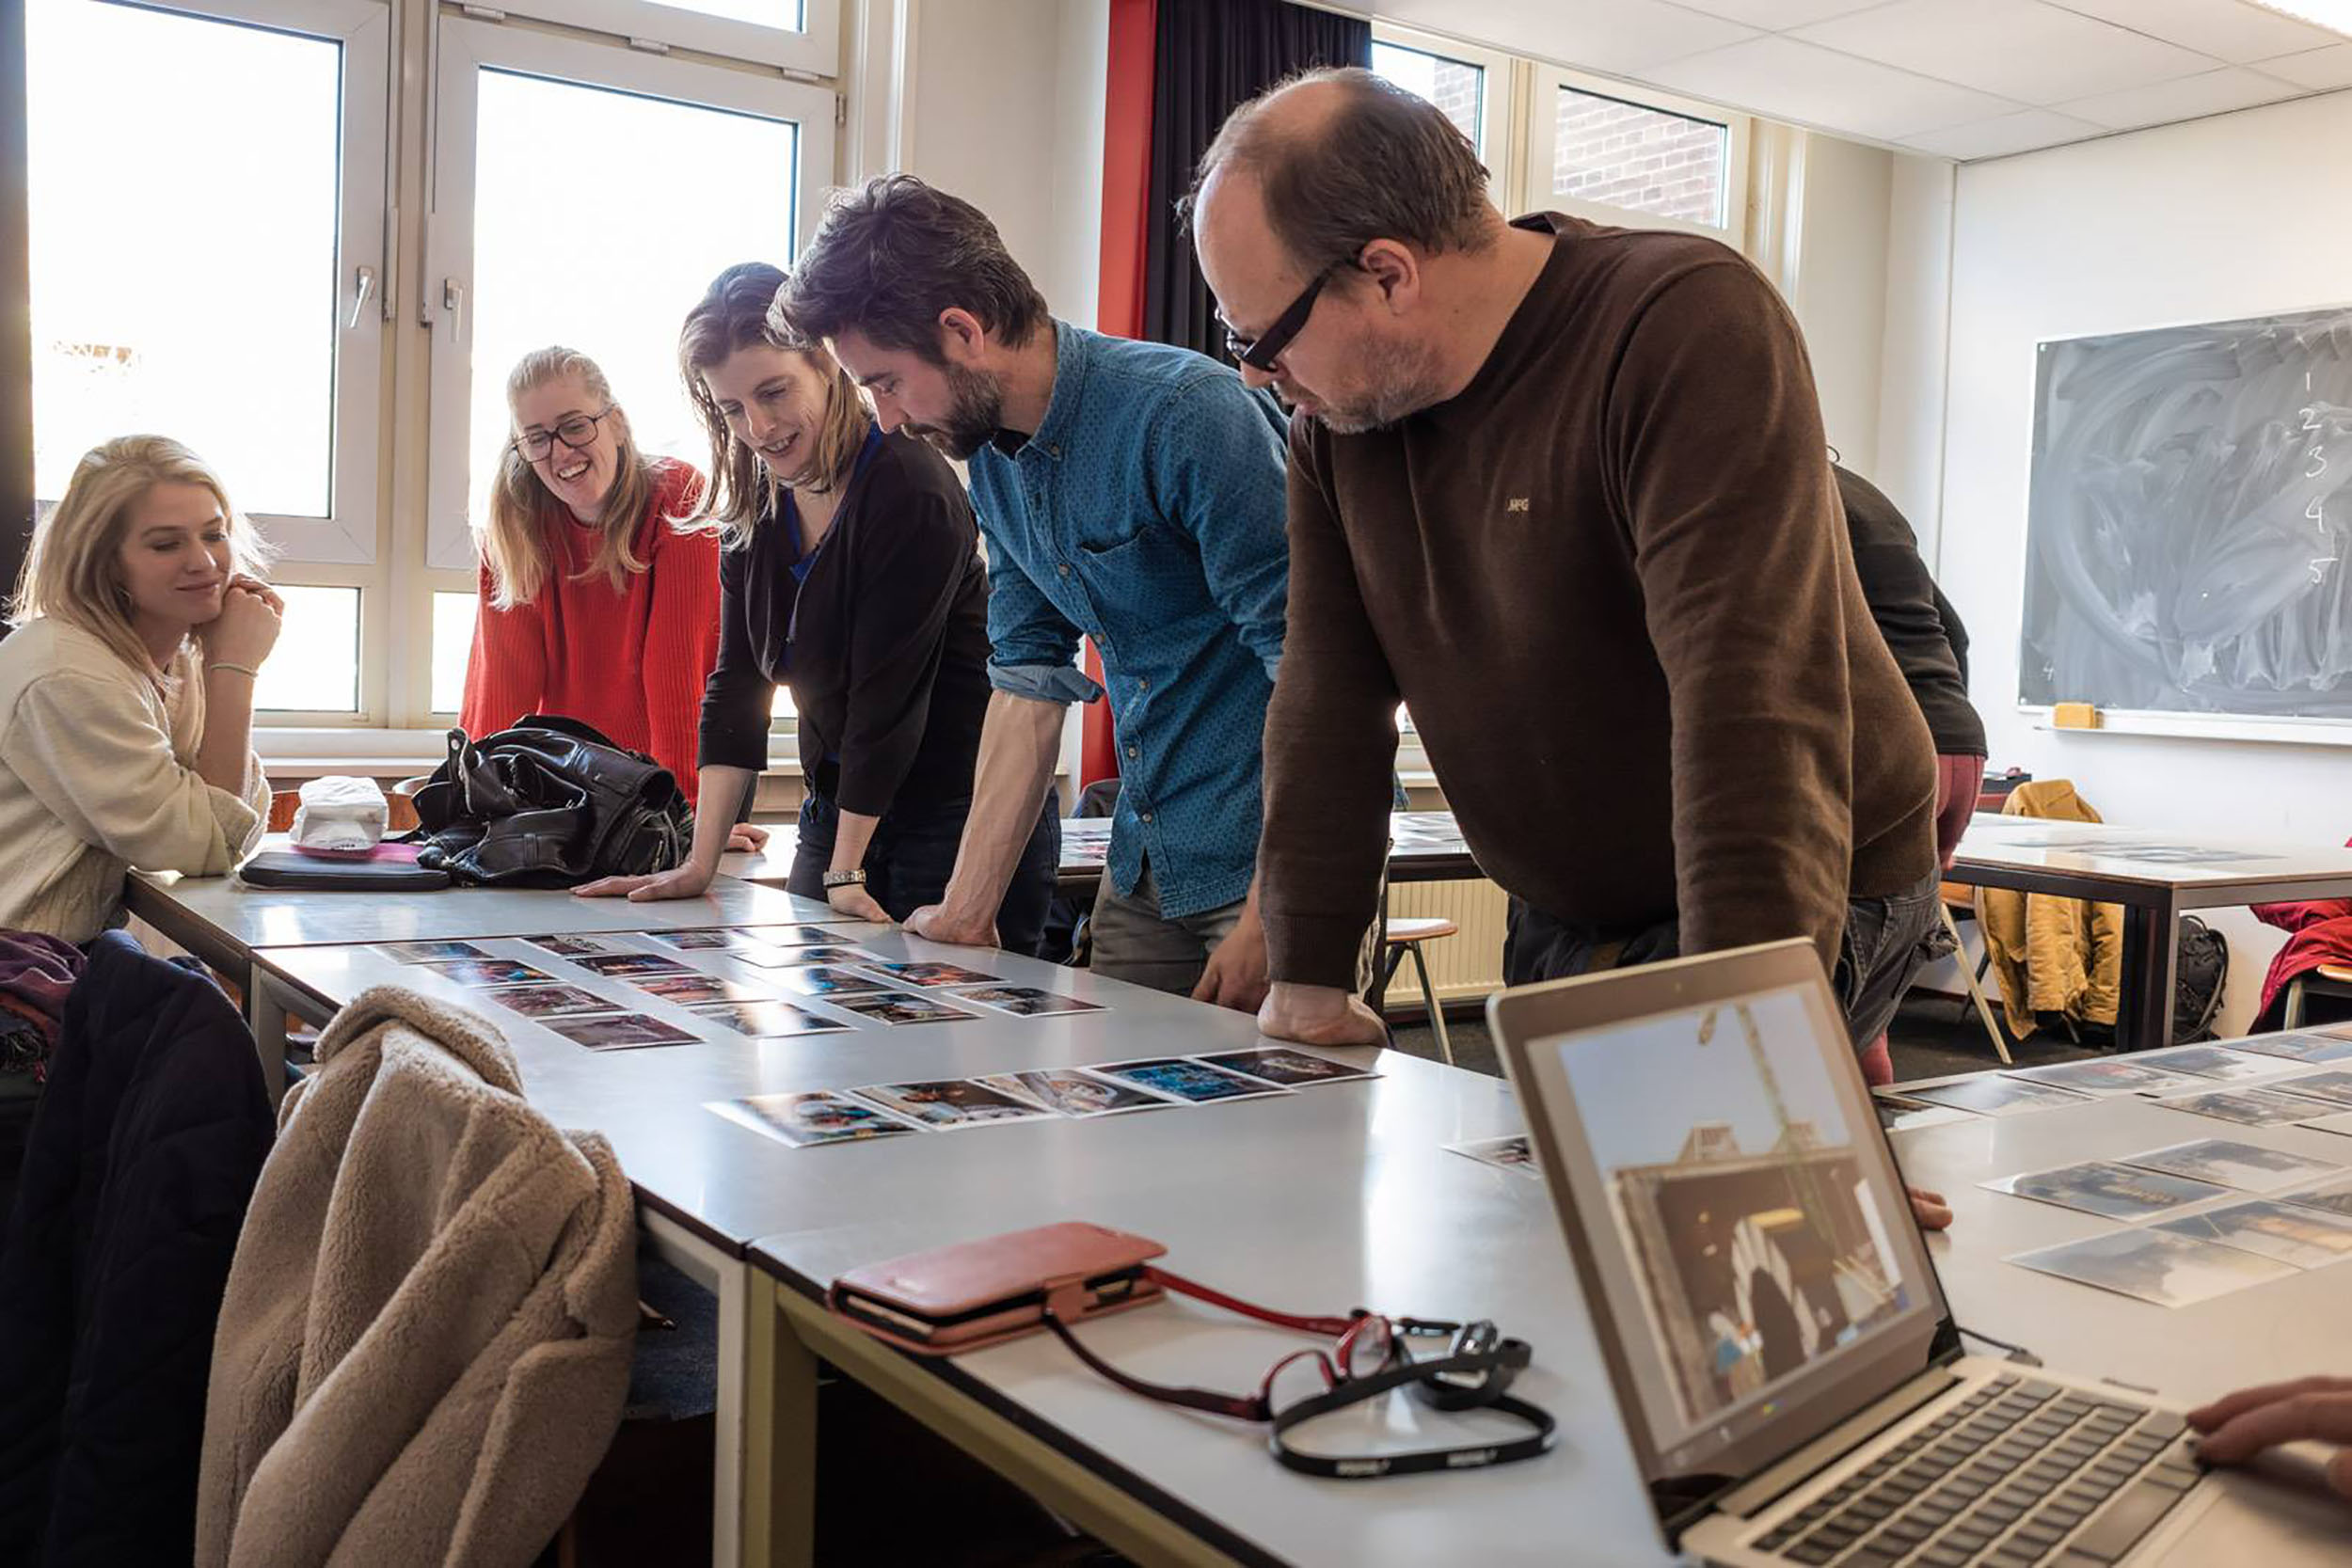 Students explaining their subjects photographed (photo credit Peter Dellenbag).